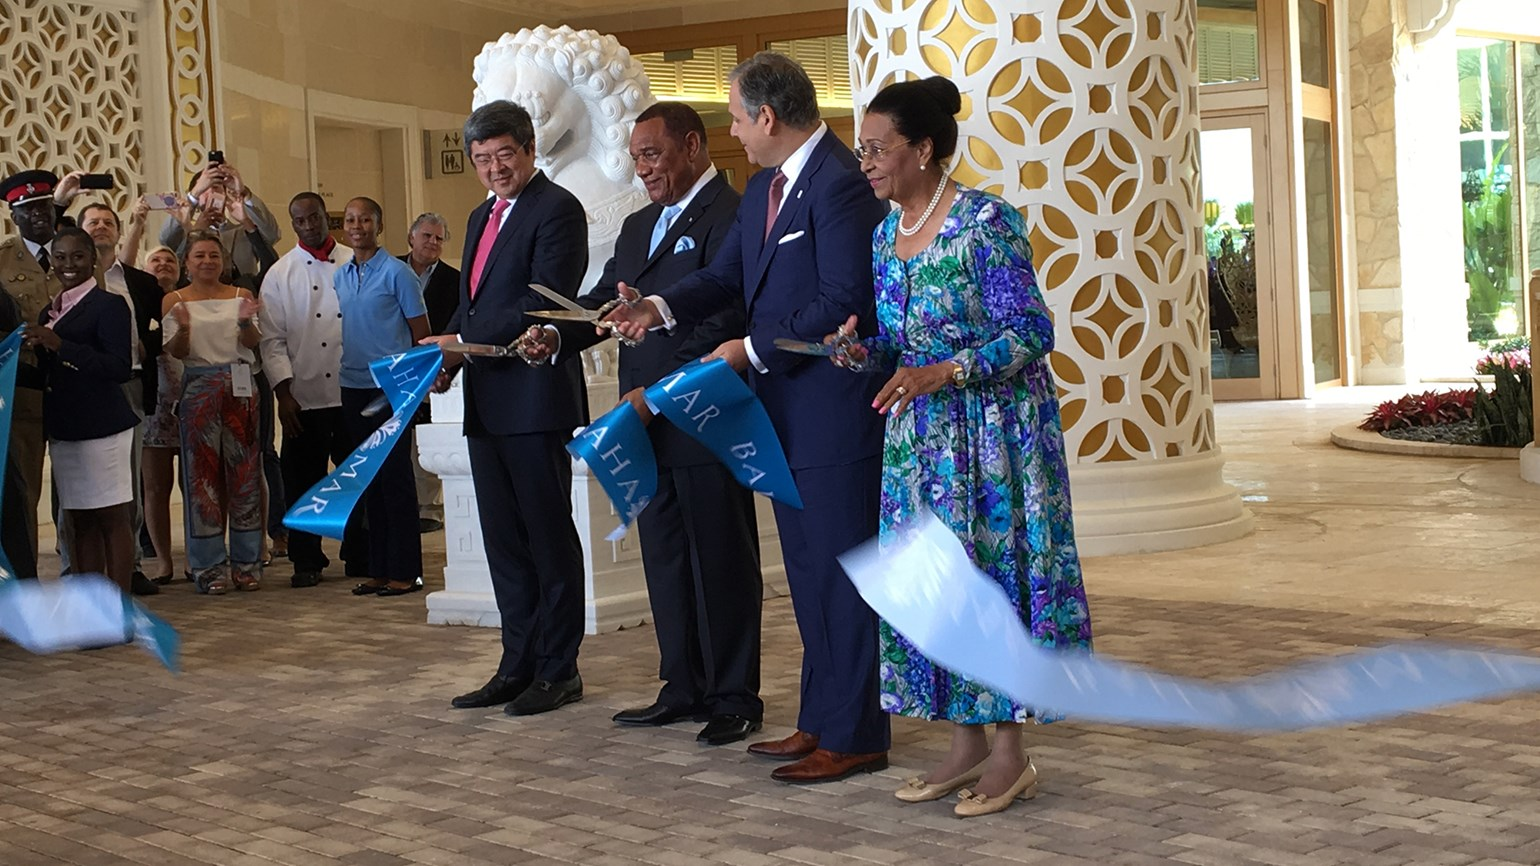 After two turbulent years, Baha Mar looks to fulfill potential